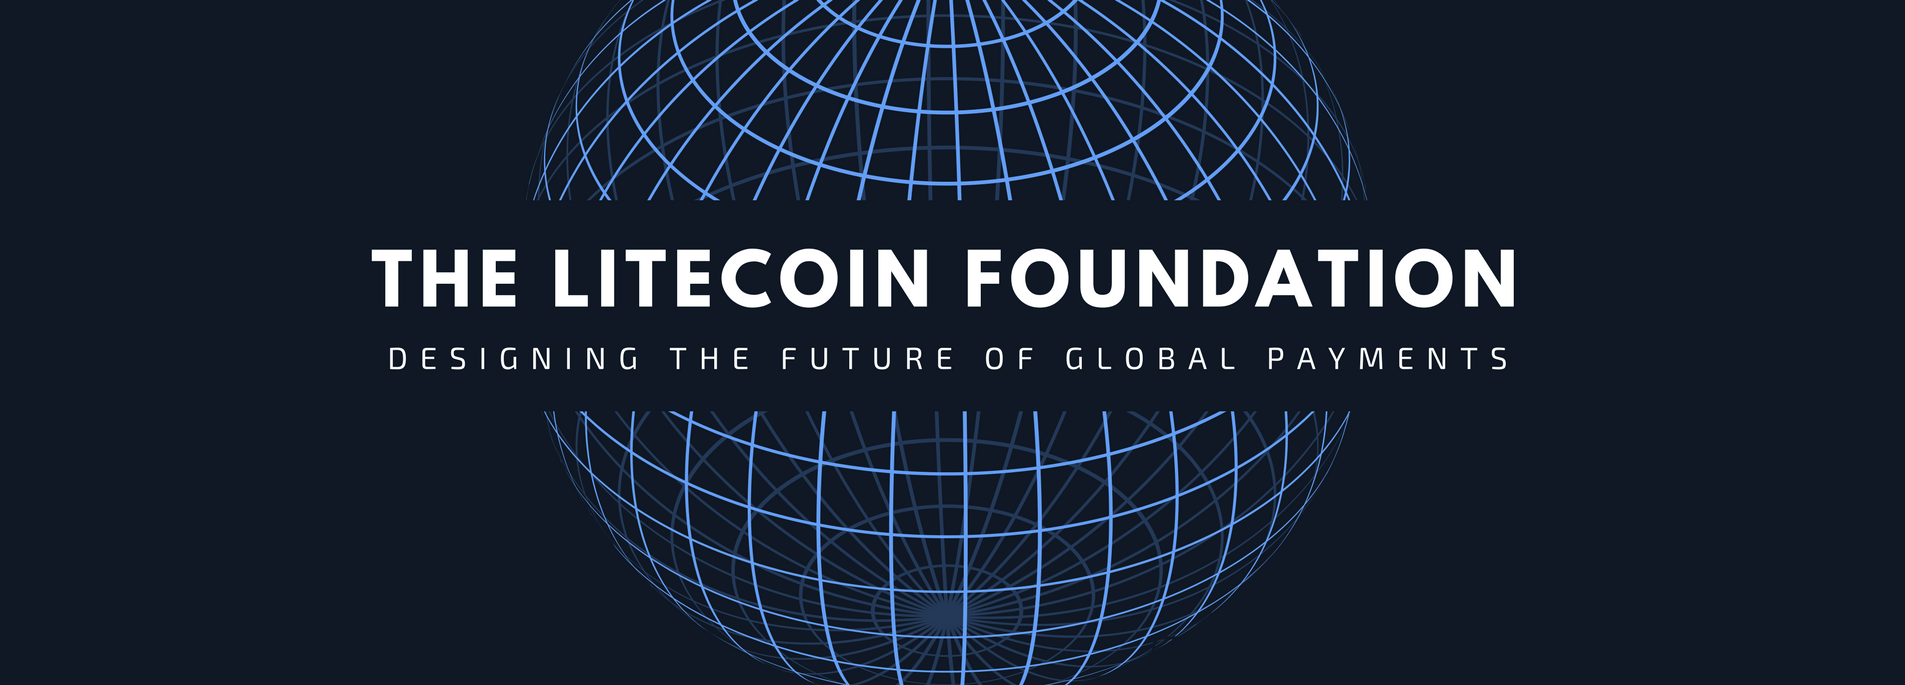 Litecoin Foundation